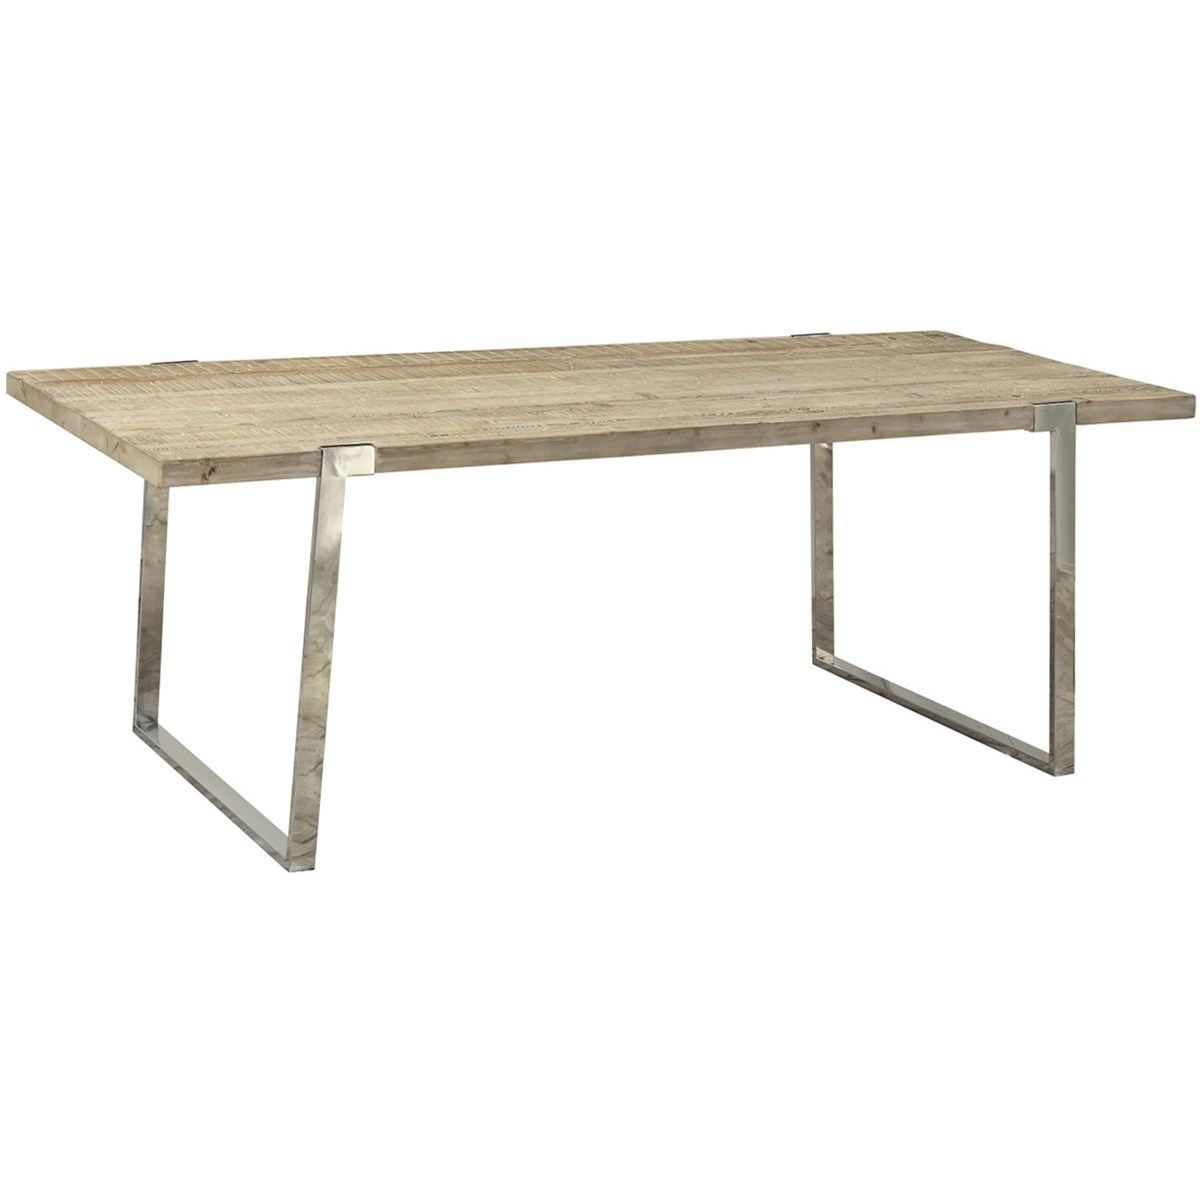 Dovetail Furniture Byron Dining Table With Stainless Steel Base